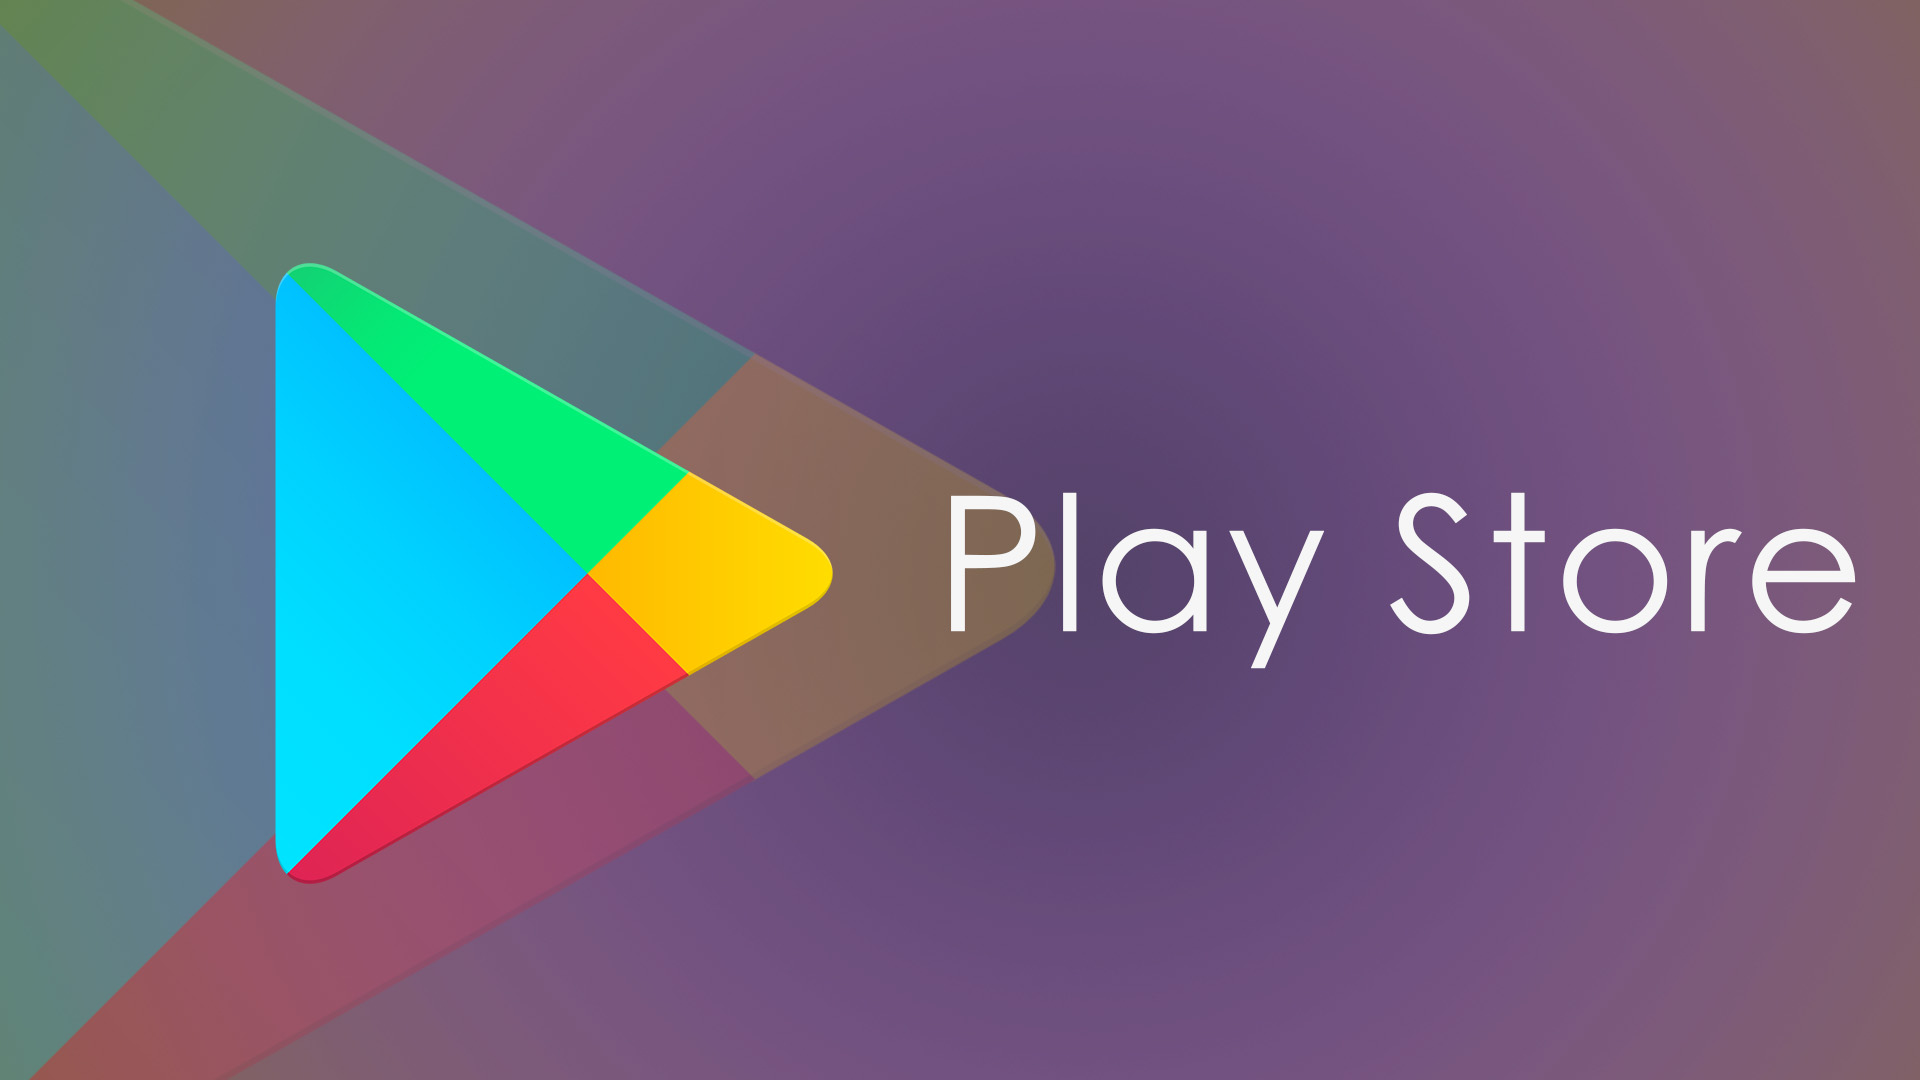 Publish App In Play Store